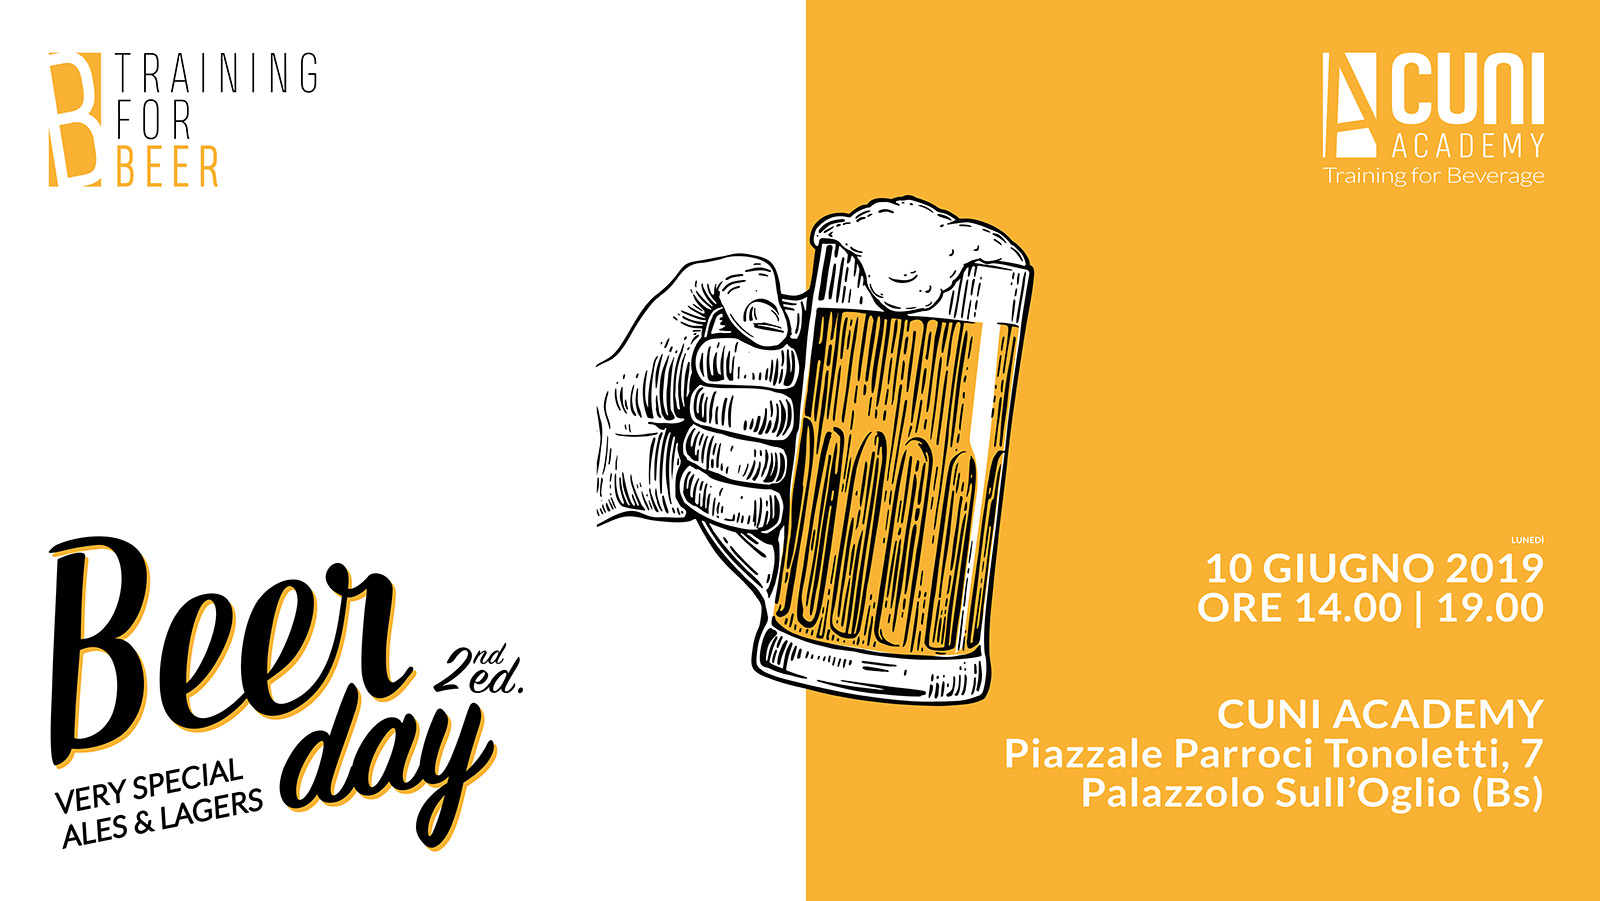 Beer Day – Very Special Ales & Lagers – 10 giugno 2019